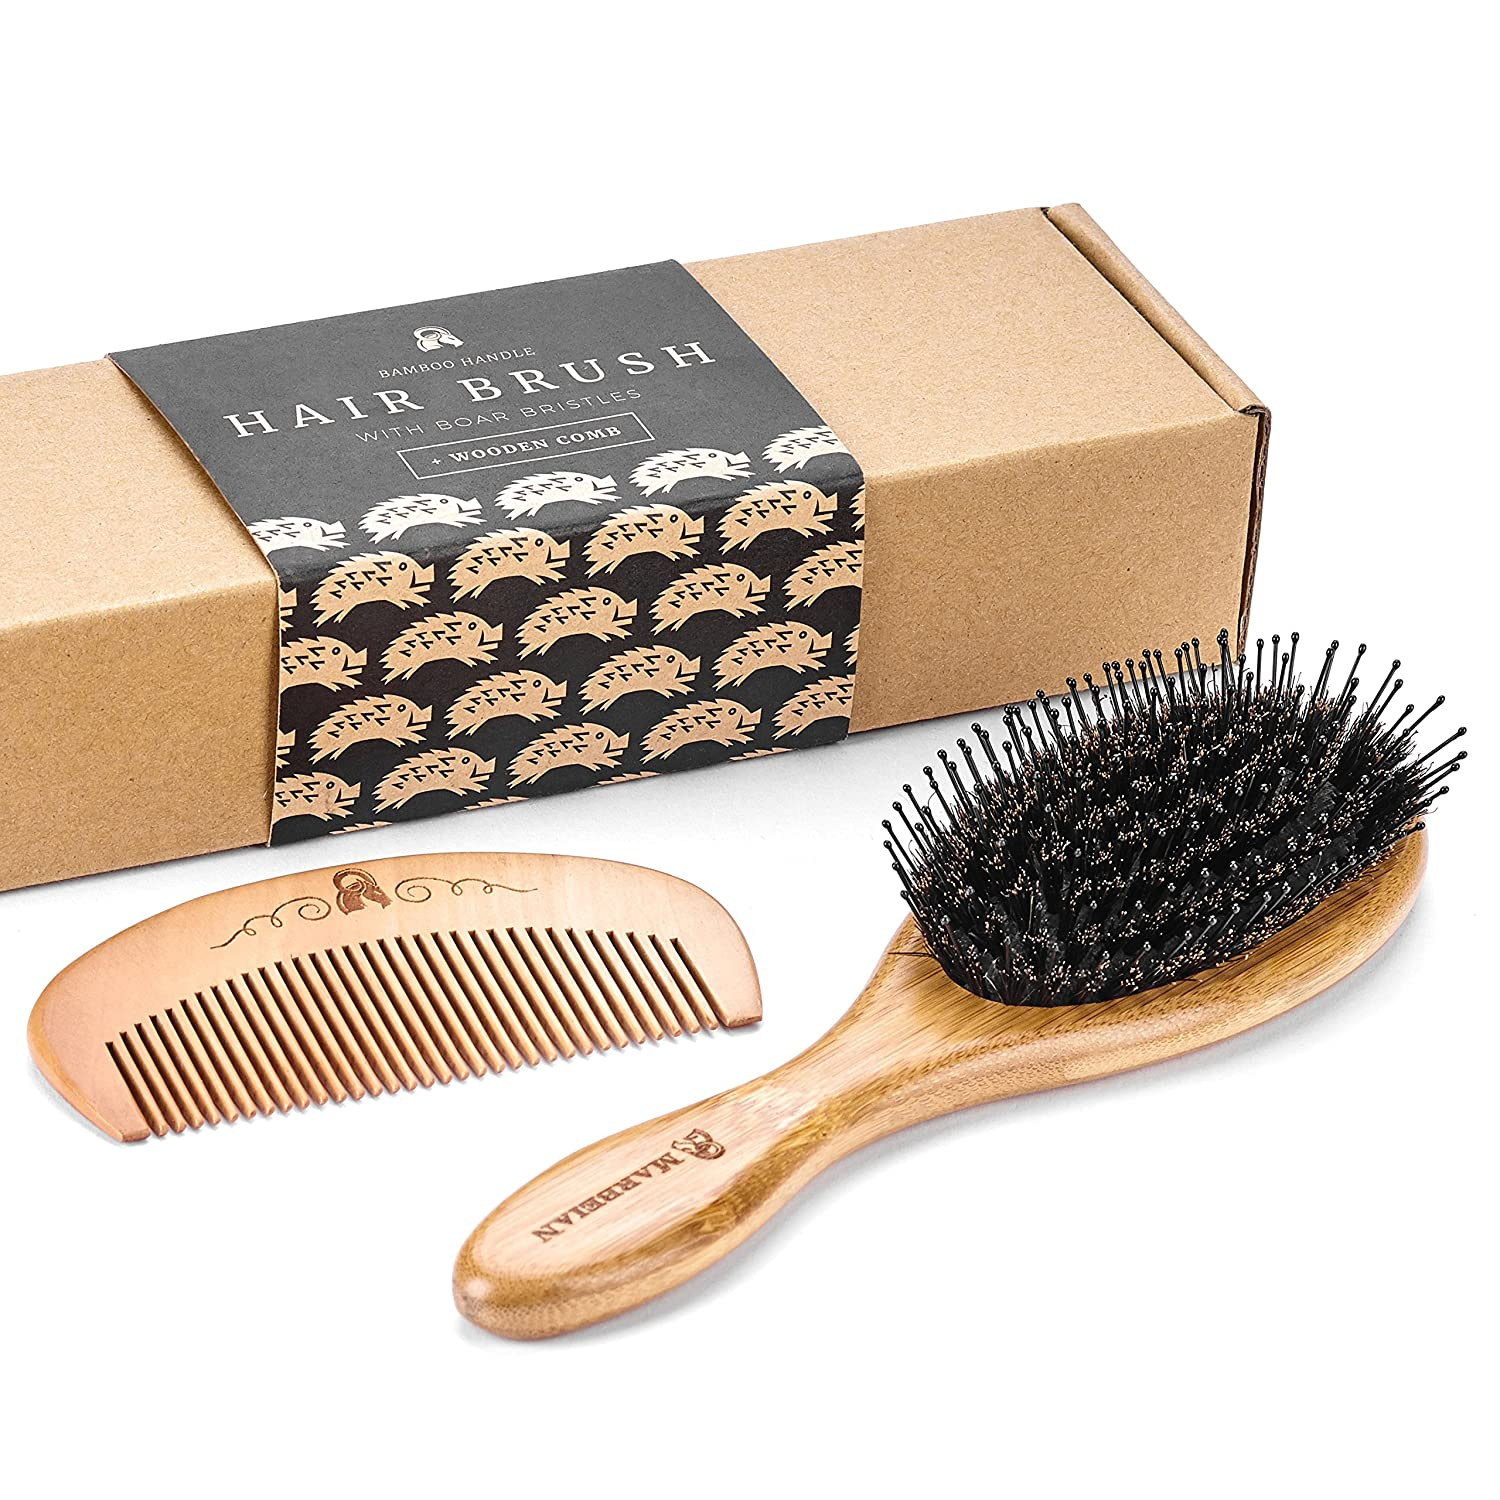 Boar Bristle Hair Brush with Detangle Pins, Included Wooden Comb for Hair Detangling, Natural Boar Bristles Make Hair Shiny and Silky, Set Comes in an Eco-Friendly Box Marbeian